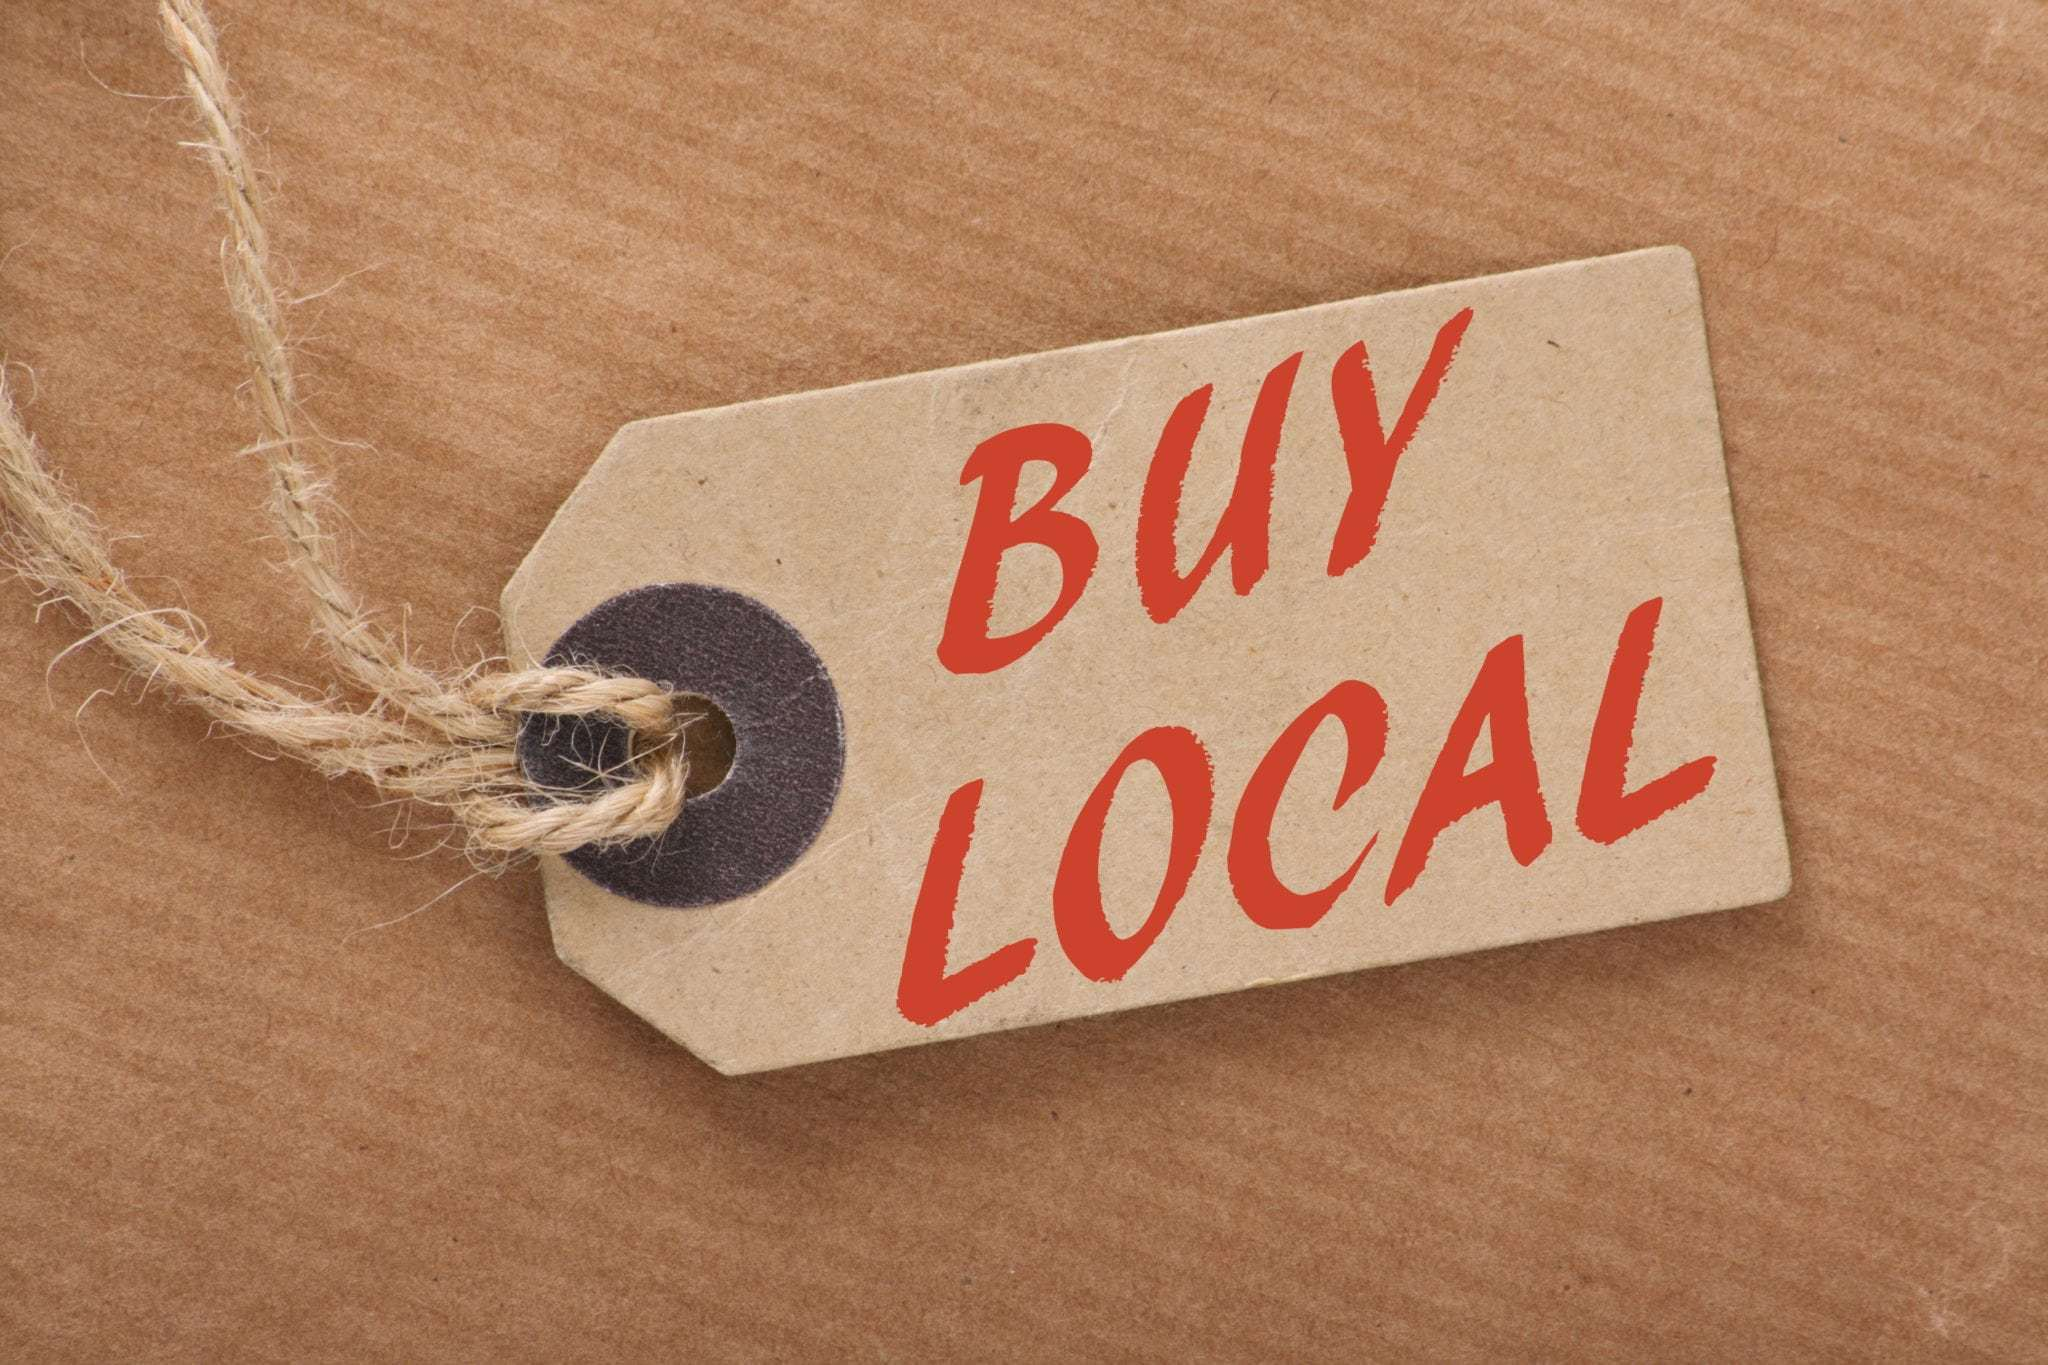 Buy Local – Lowen's guide to 10 gifts to support local this holiday season